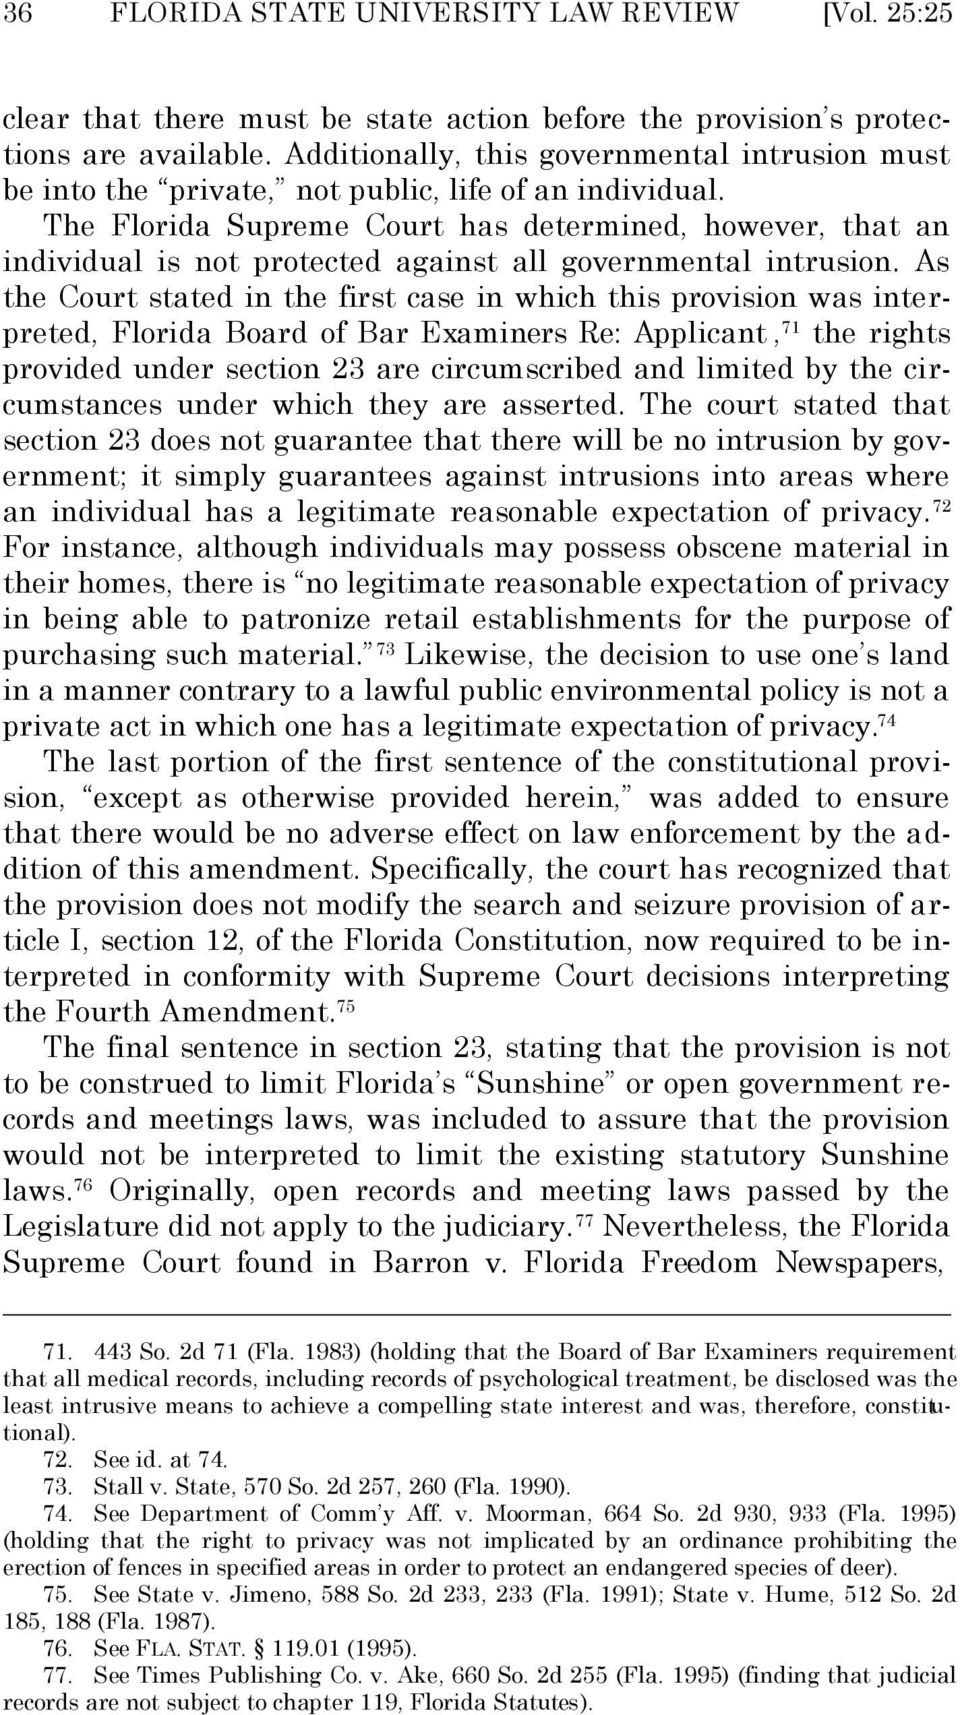 The Florida Supreme Court has determined, however, that an individual is not protected against all governmental intrusion.